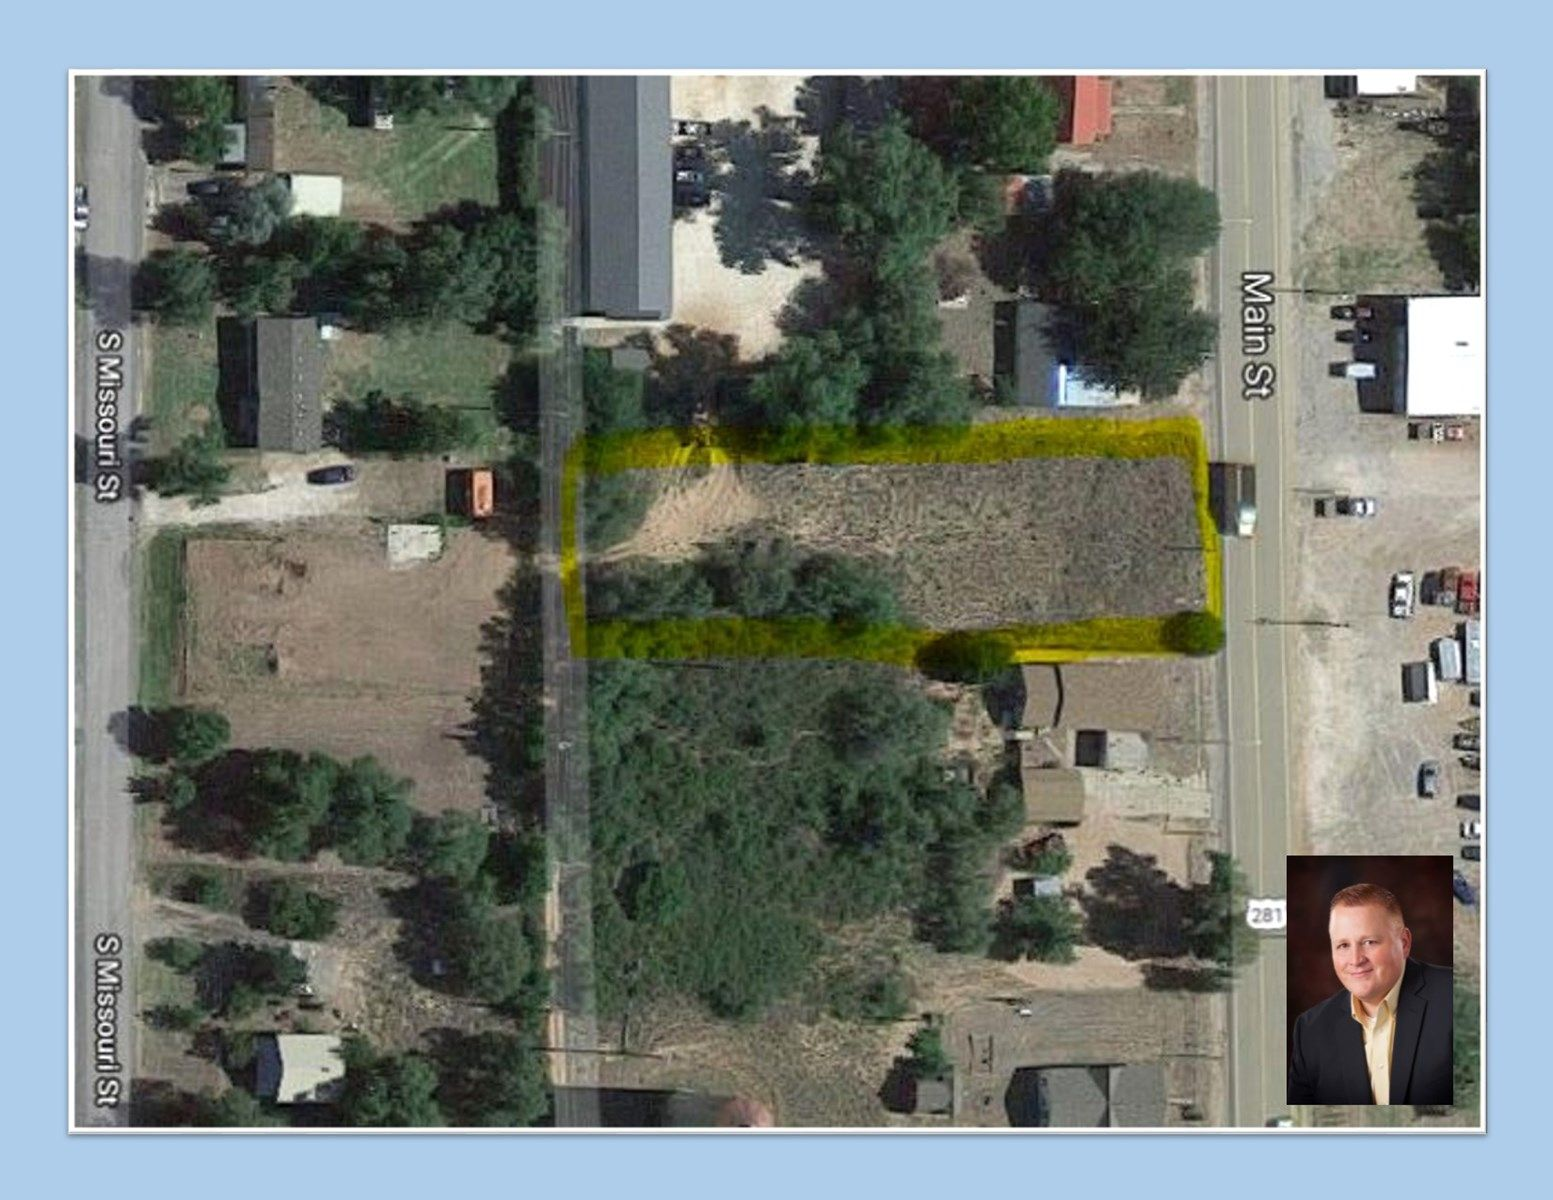 Vacant Commercial Lot For Sale In Waynoka Ok Commercial Property For Sale Lots For Sale Land For Sale